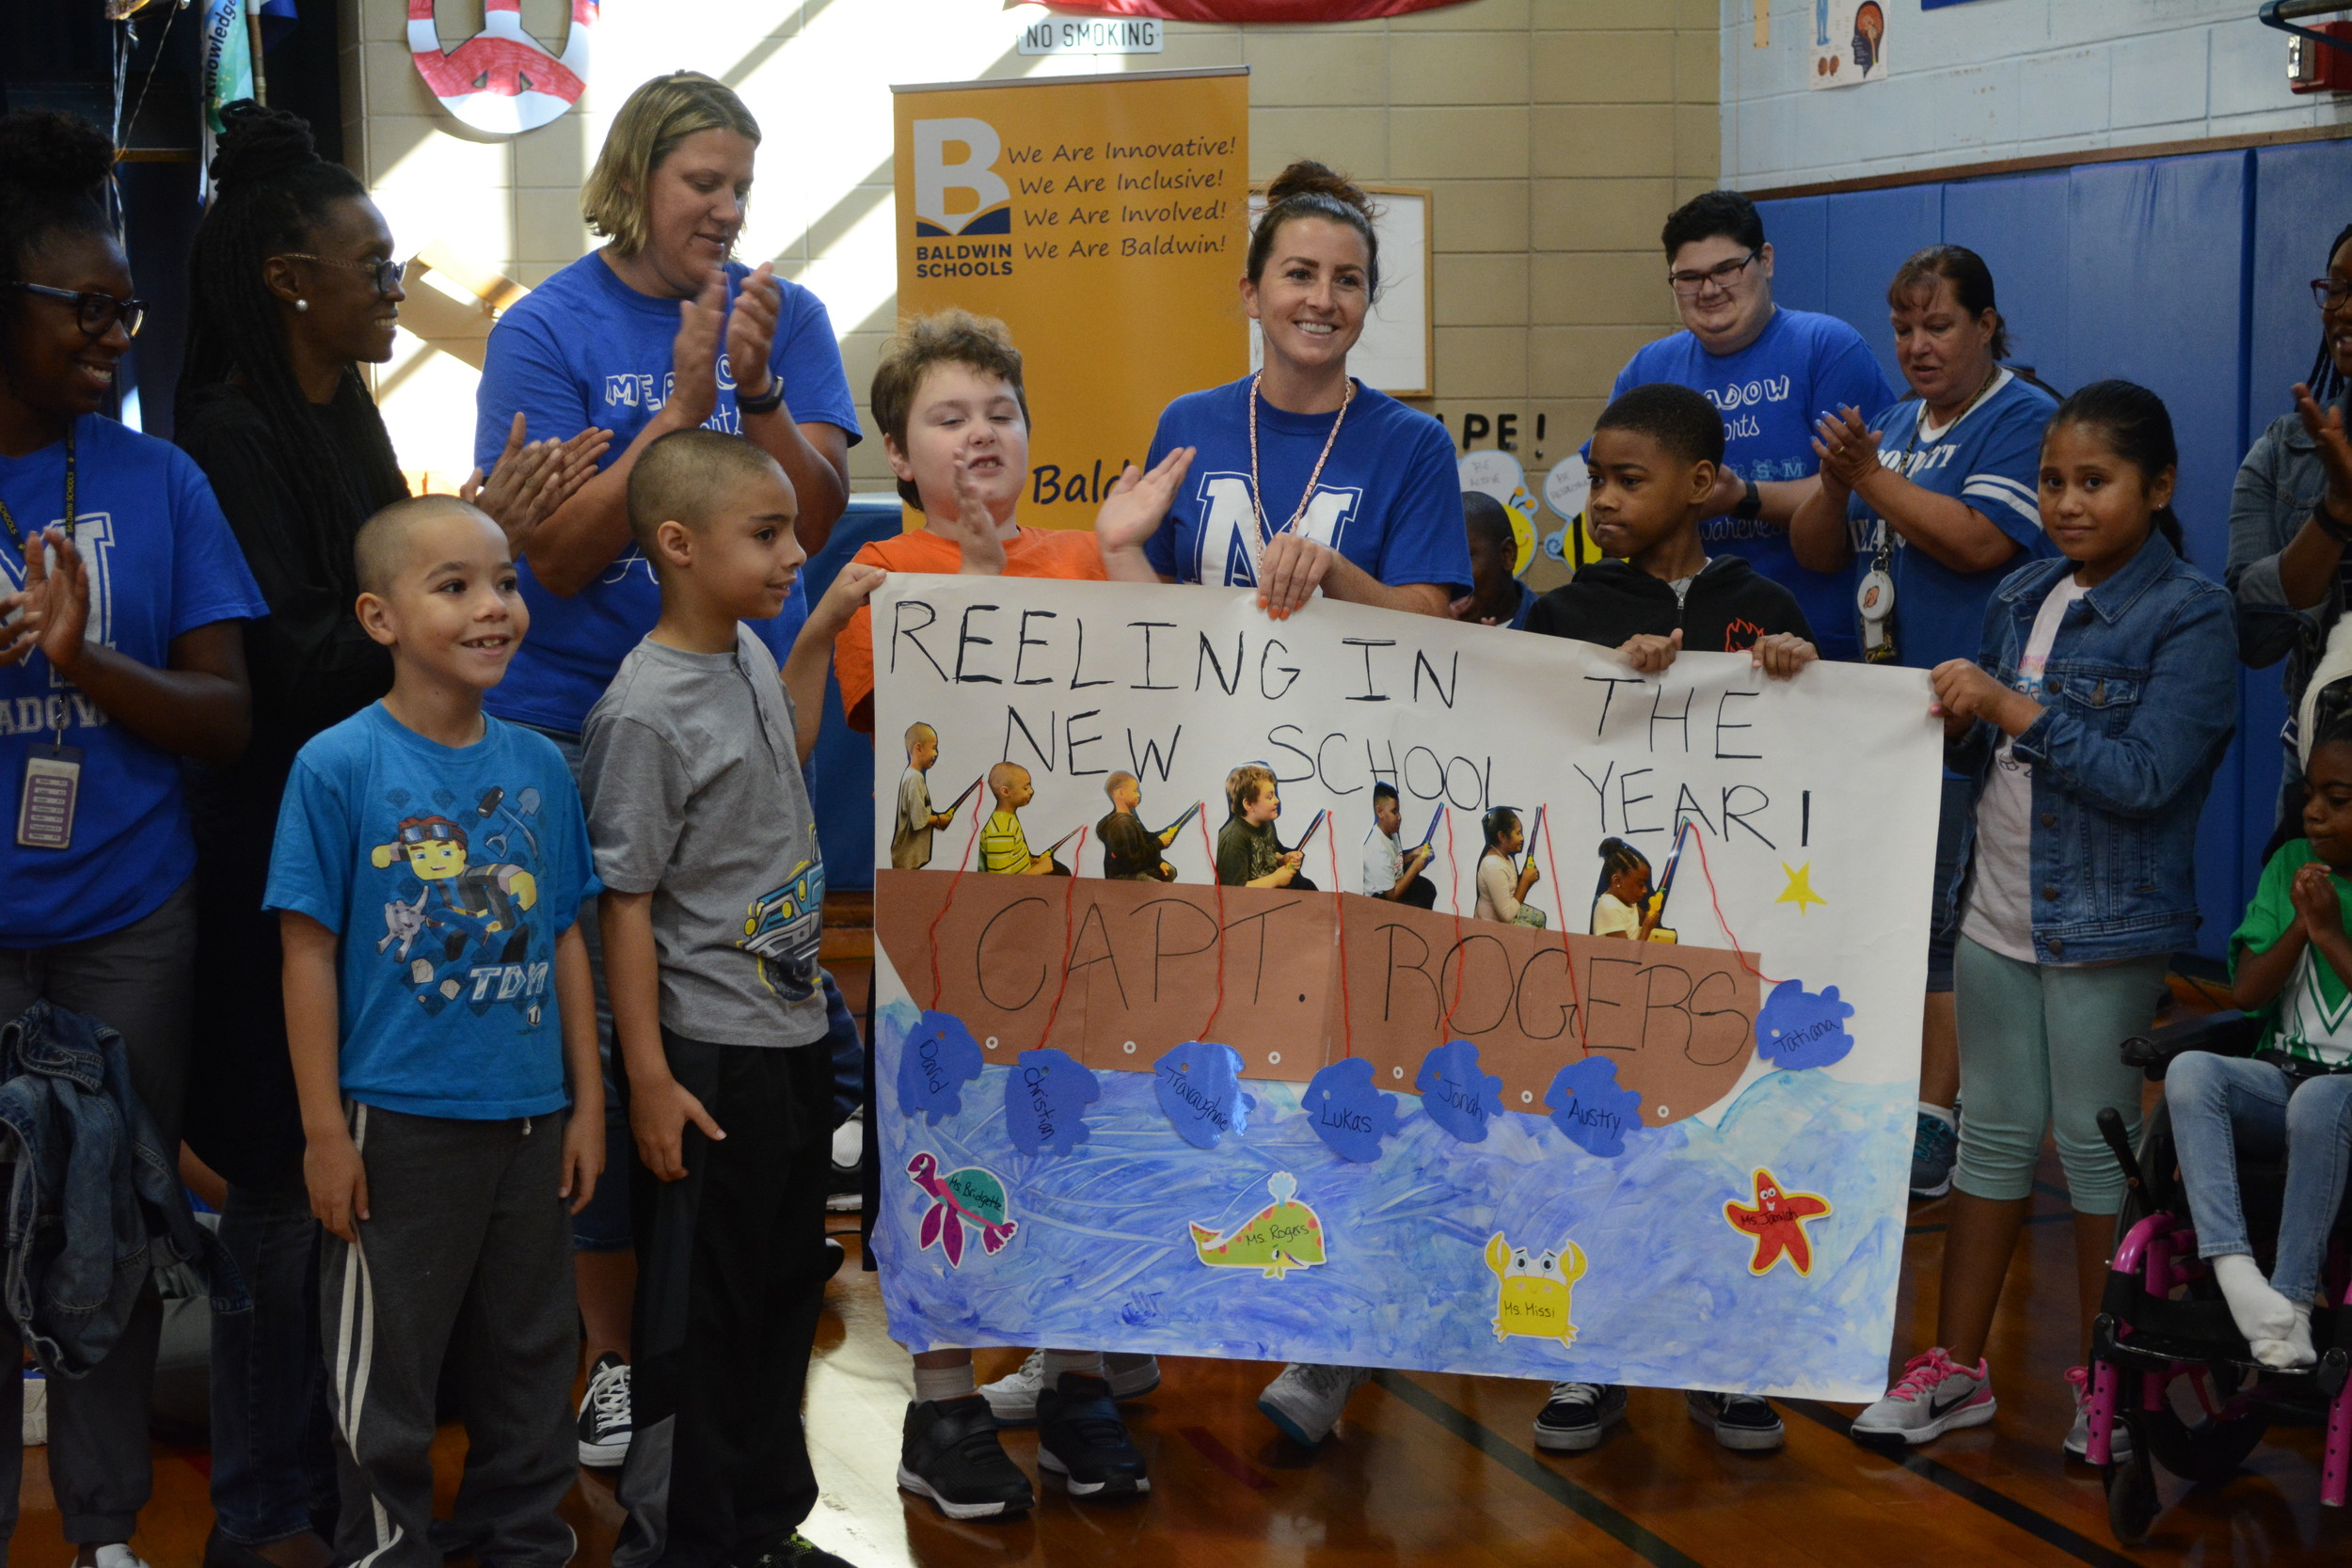 Ms. Rogers fourth grade class shows off their fishing-inspired banner during Meadow Elementary School's Pep Rally.